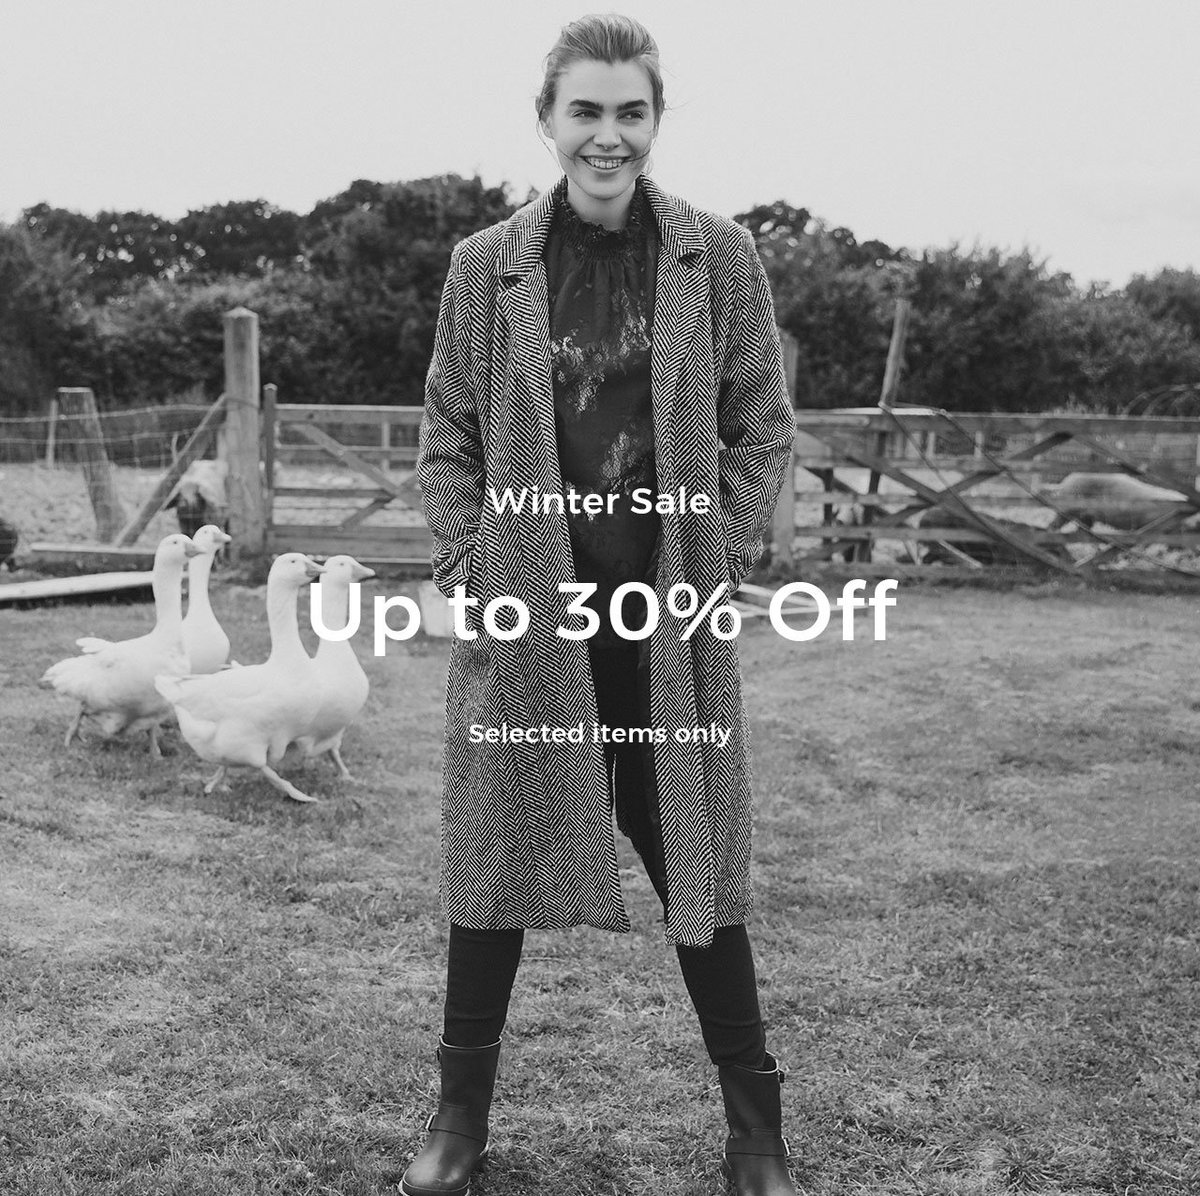 test Twitter Media - Have you explored our winter sale yet? What are you waiting for ➡ https://t.co/aknanzSOHi https://t.co/LzwWXJVBgj